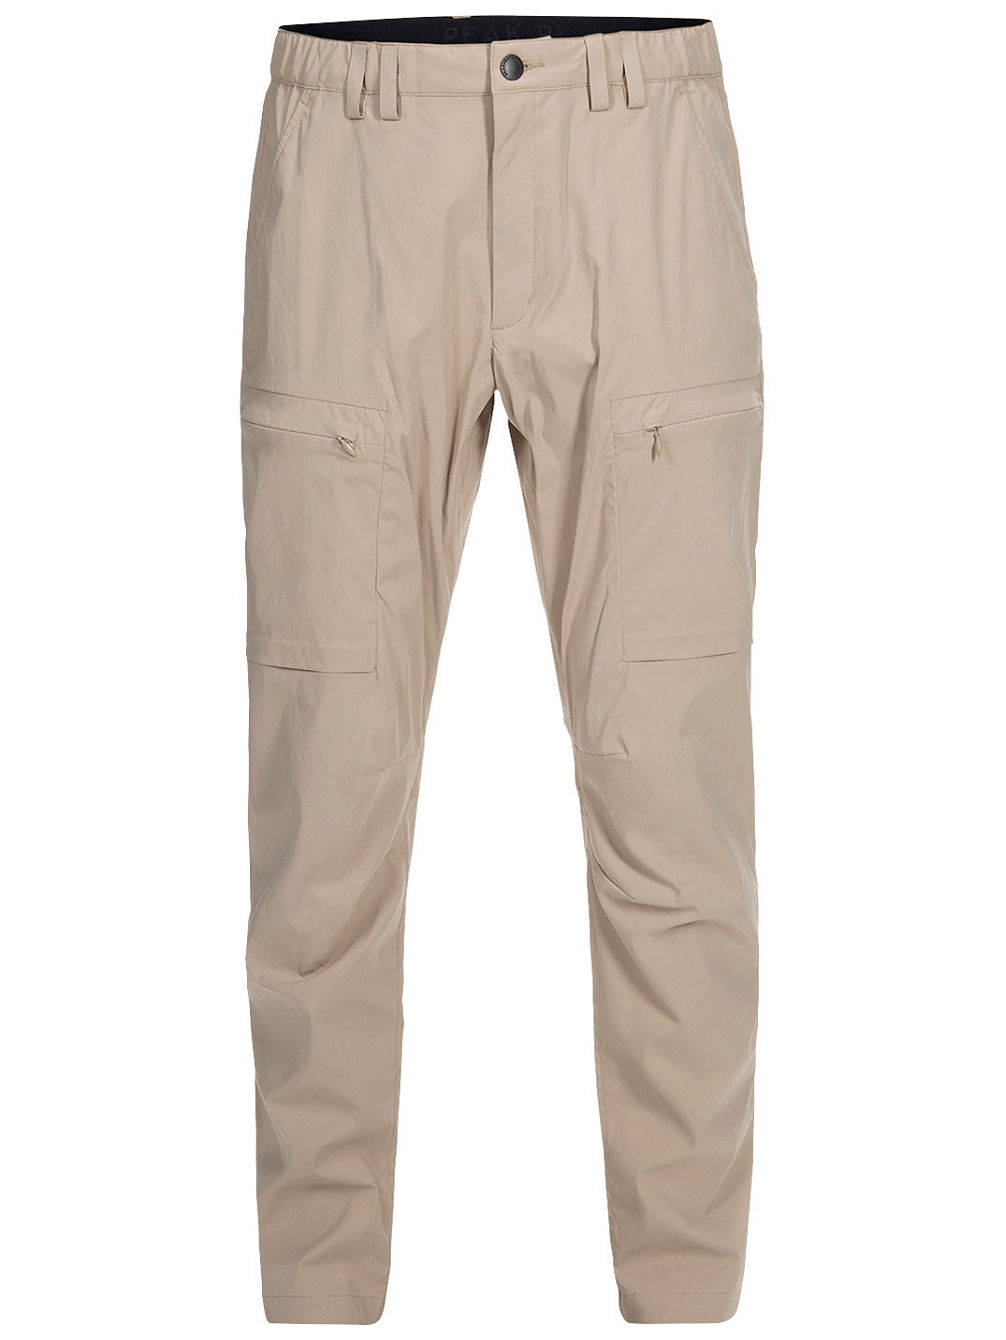 Treck Cargo Outdoor Pants